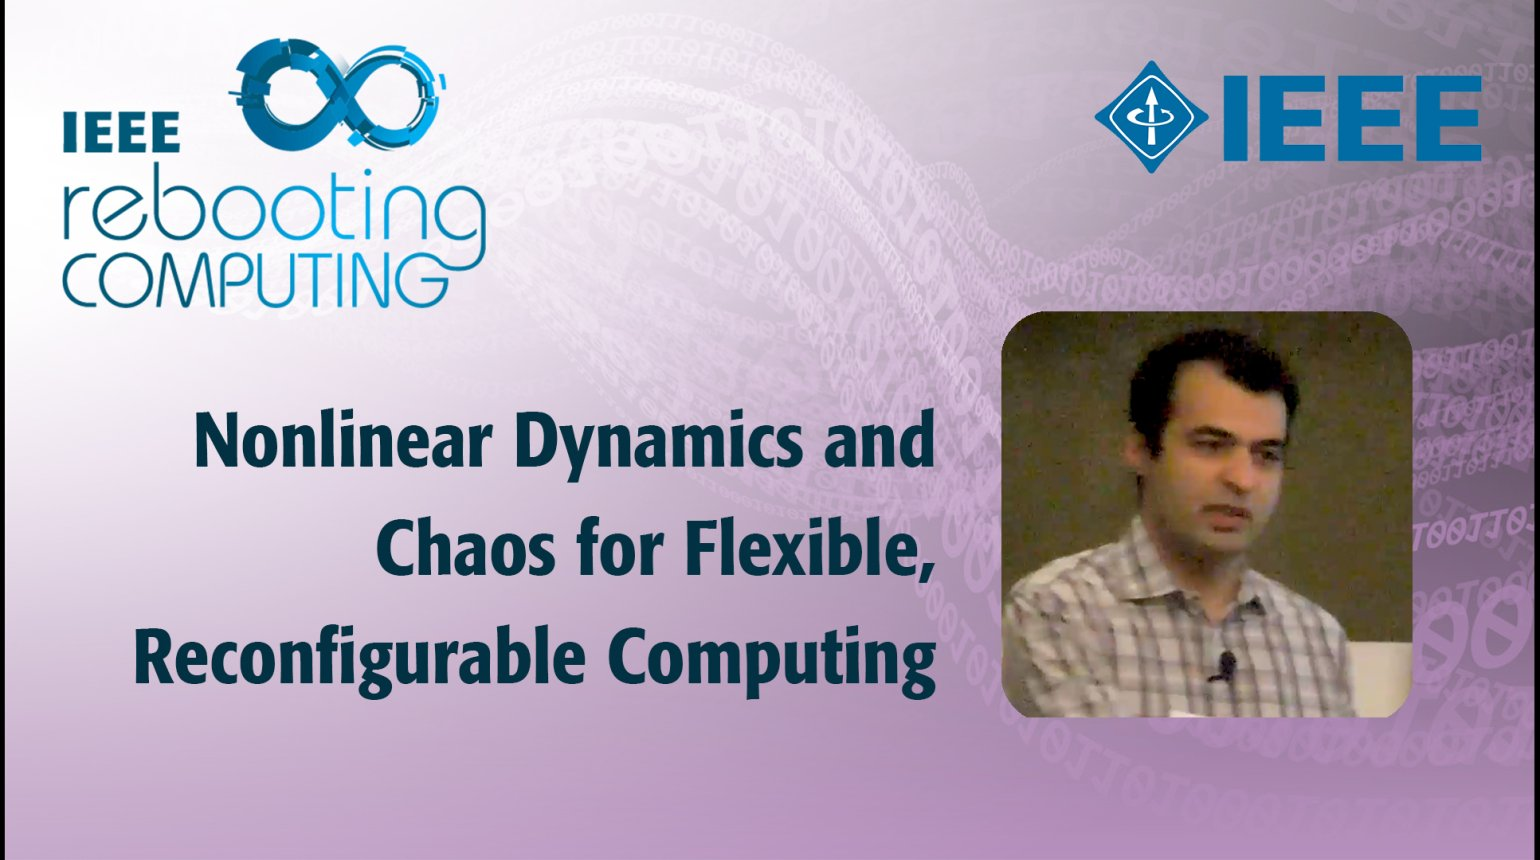 Nonlinear Dynamics and Chaos for Flexible, Reconfigurable Computing - IEEE Rebooting Computing 2017